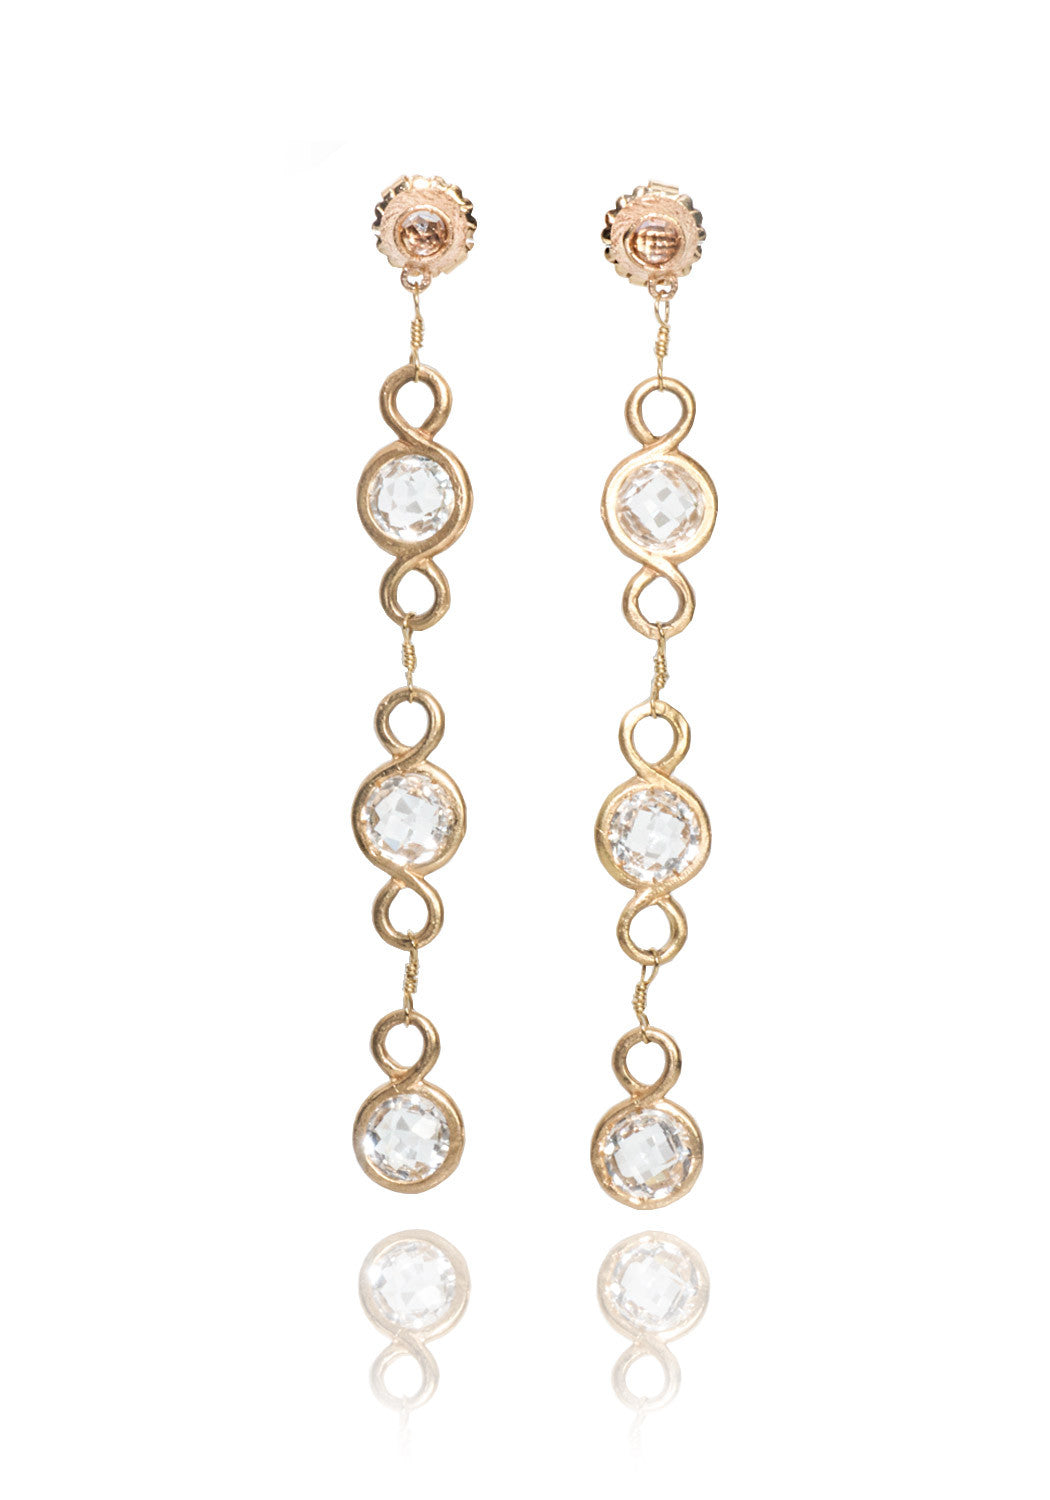 Dominique Cohen White Topaz & Rose Gold Duster Earrings